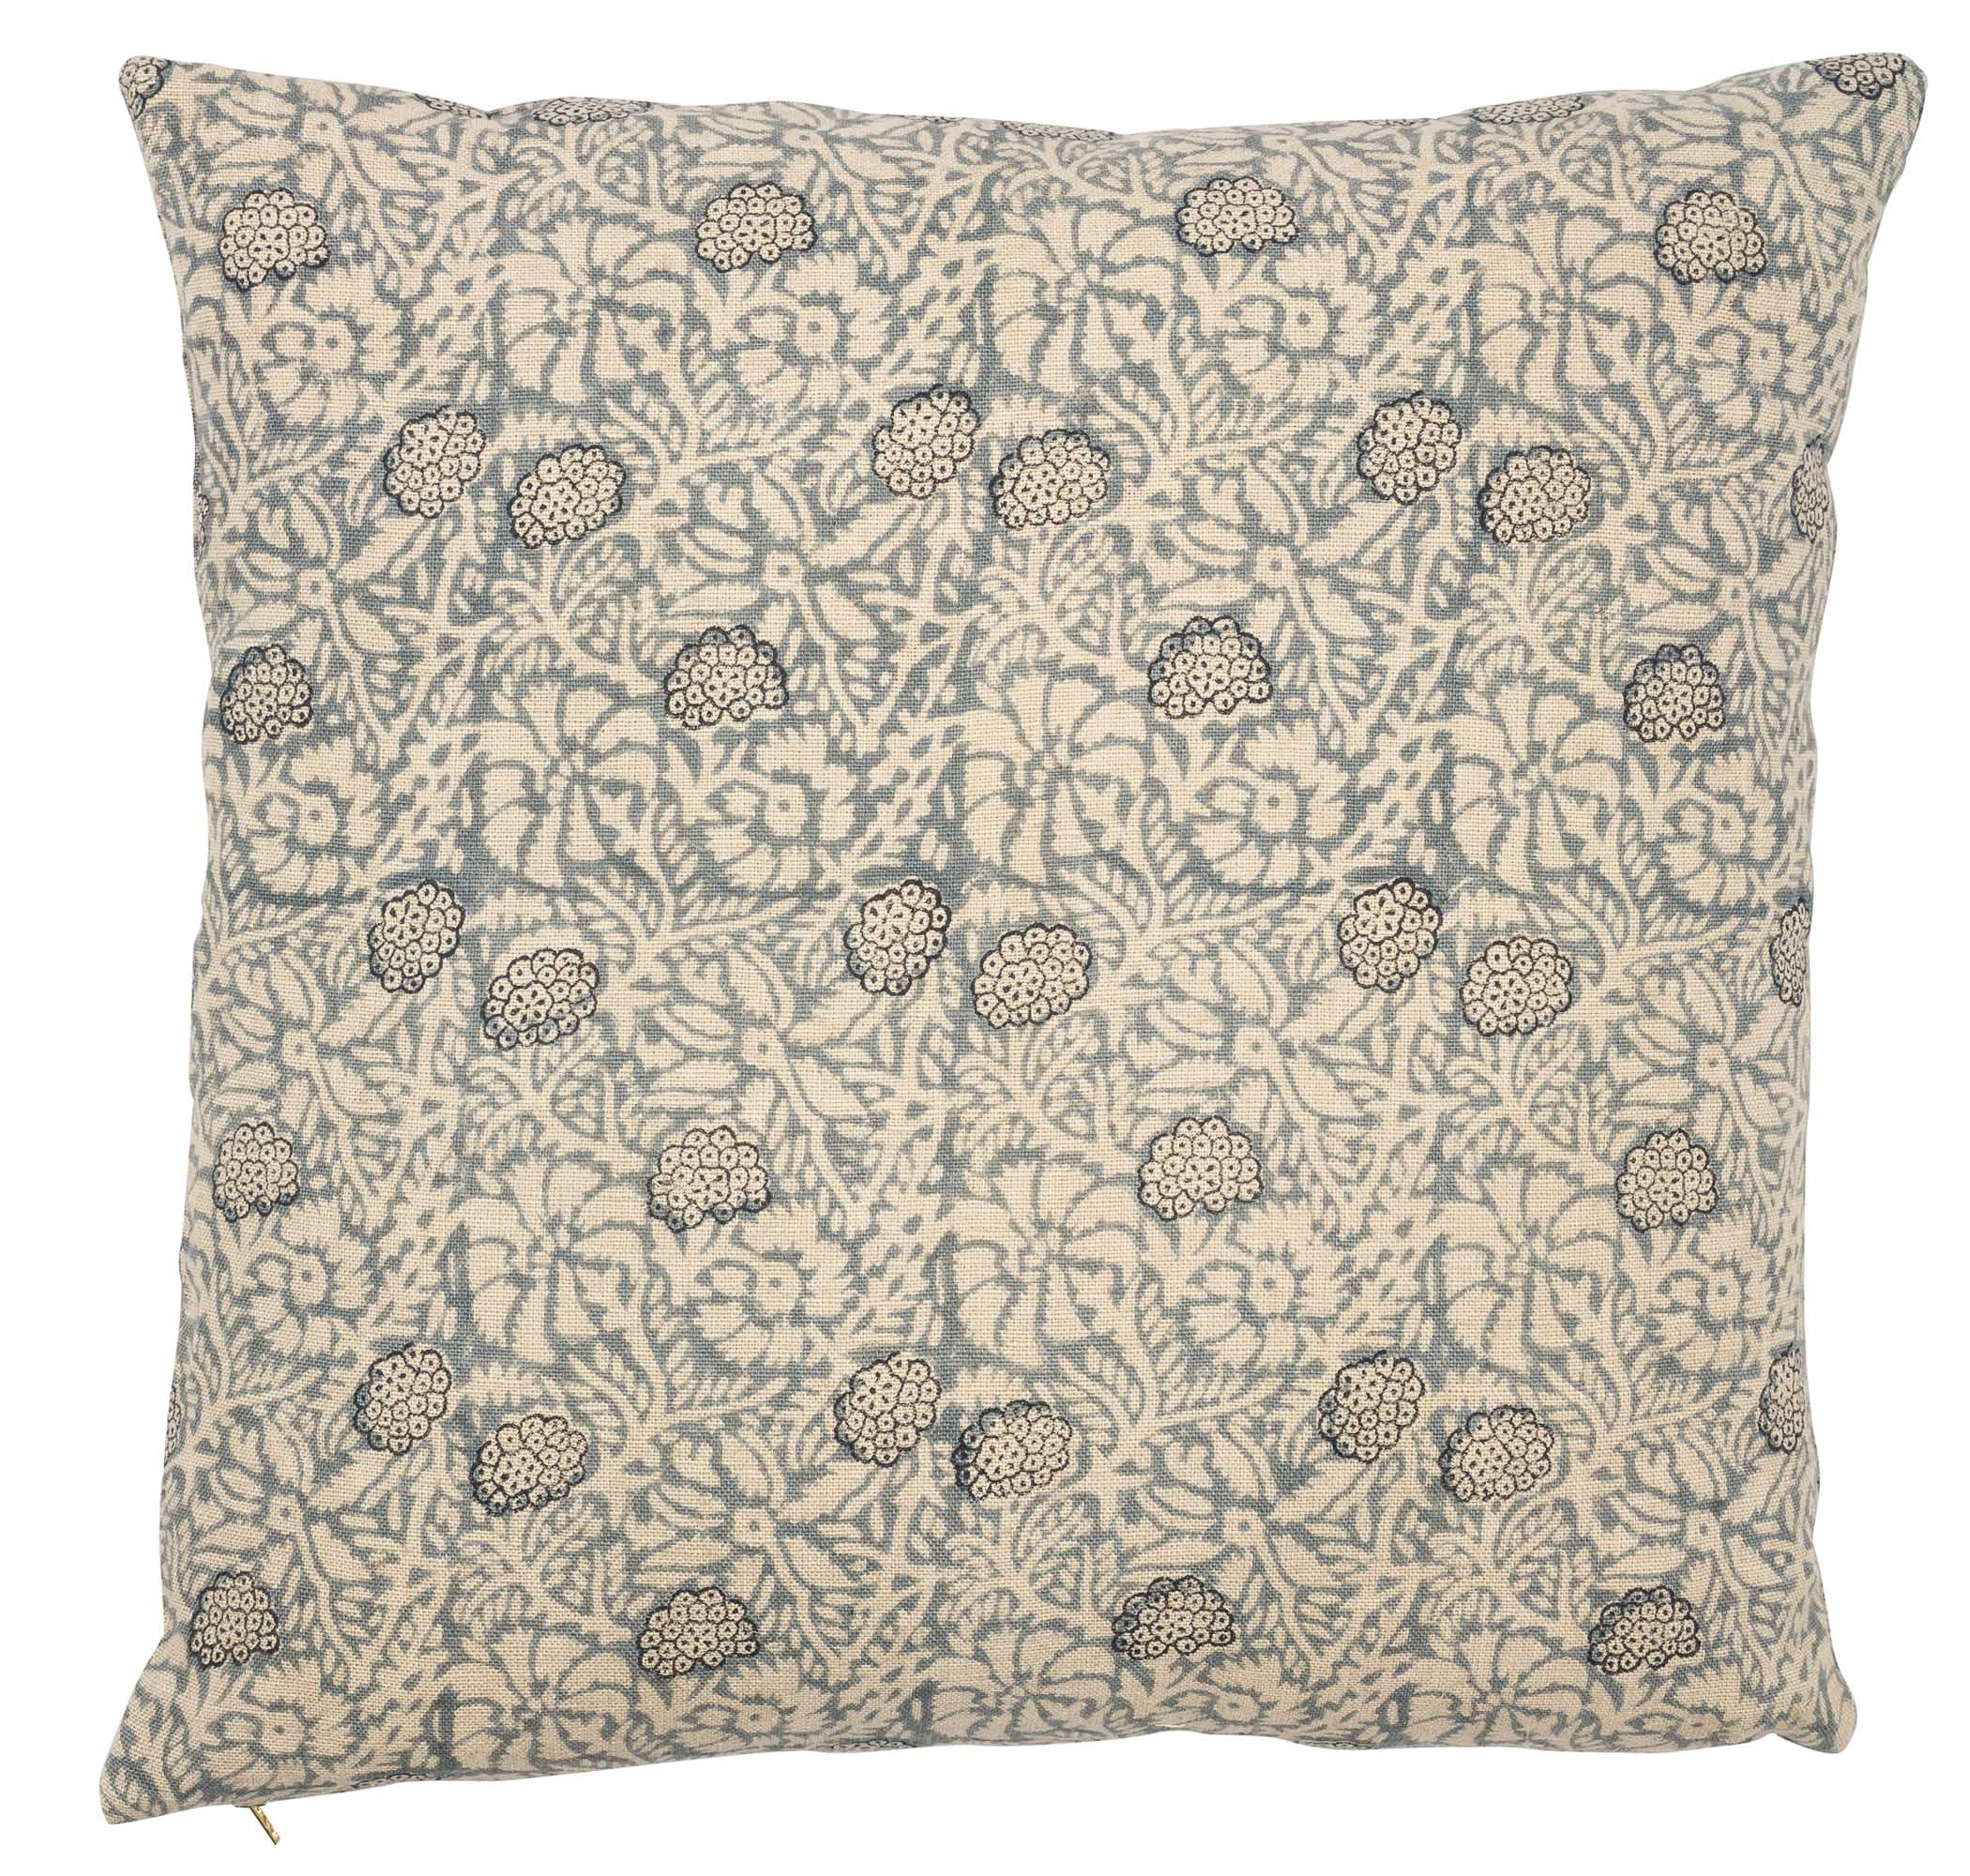 Cushion Cover - Meadow - Blue